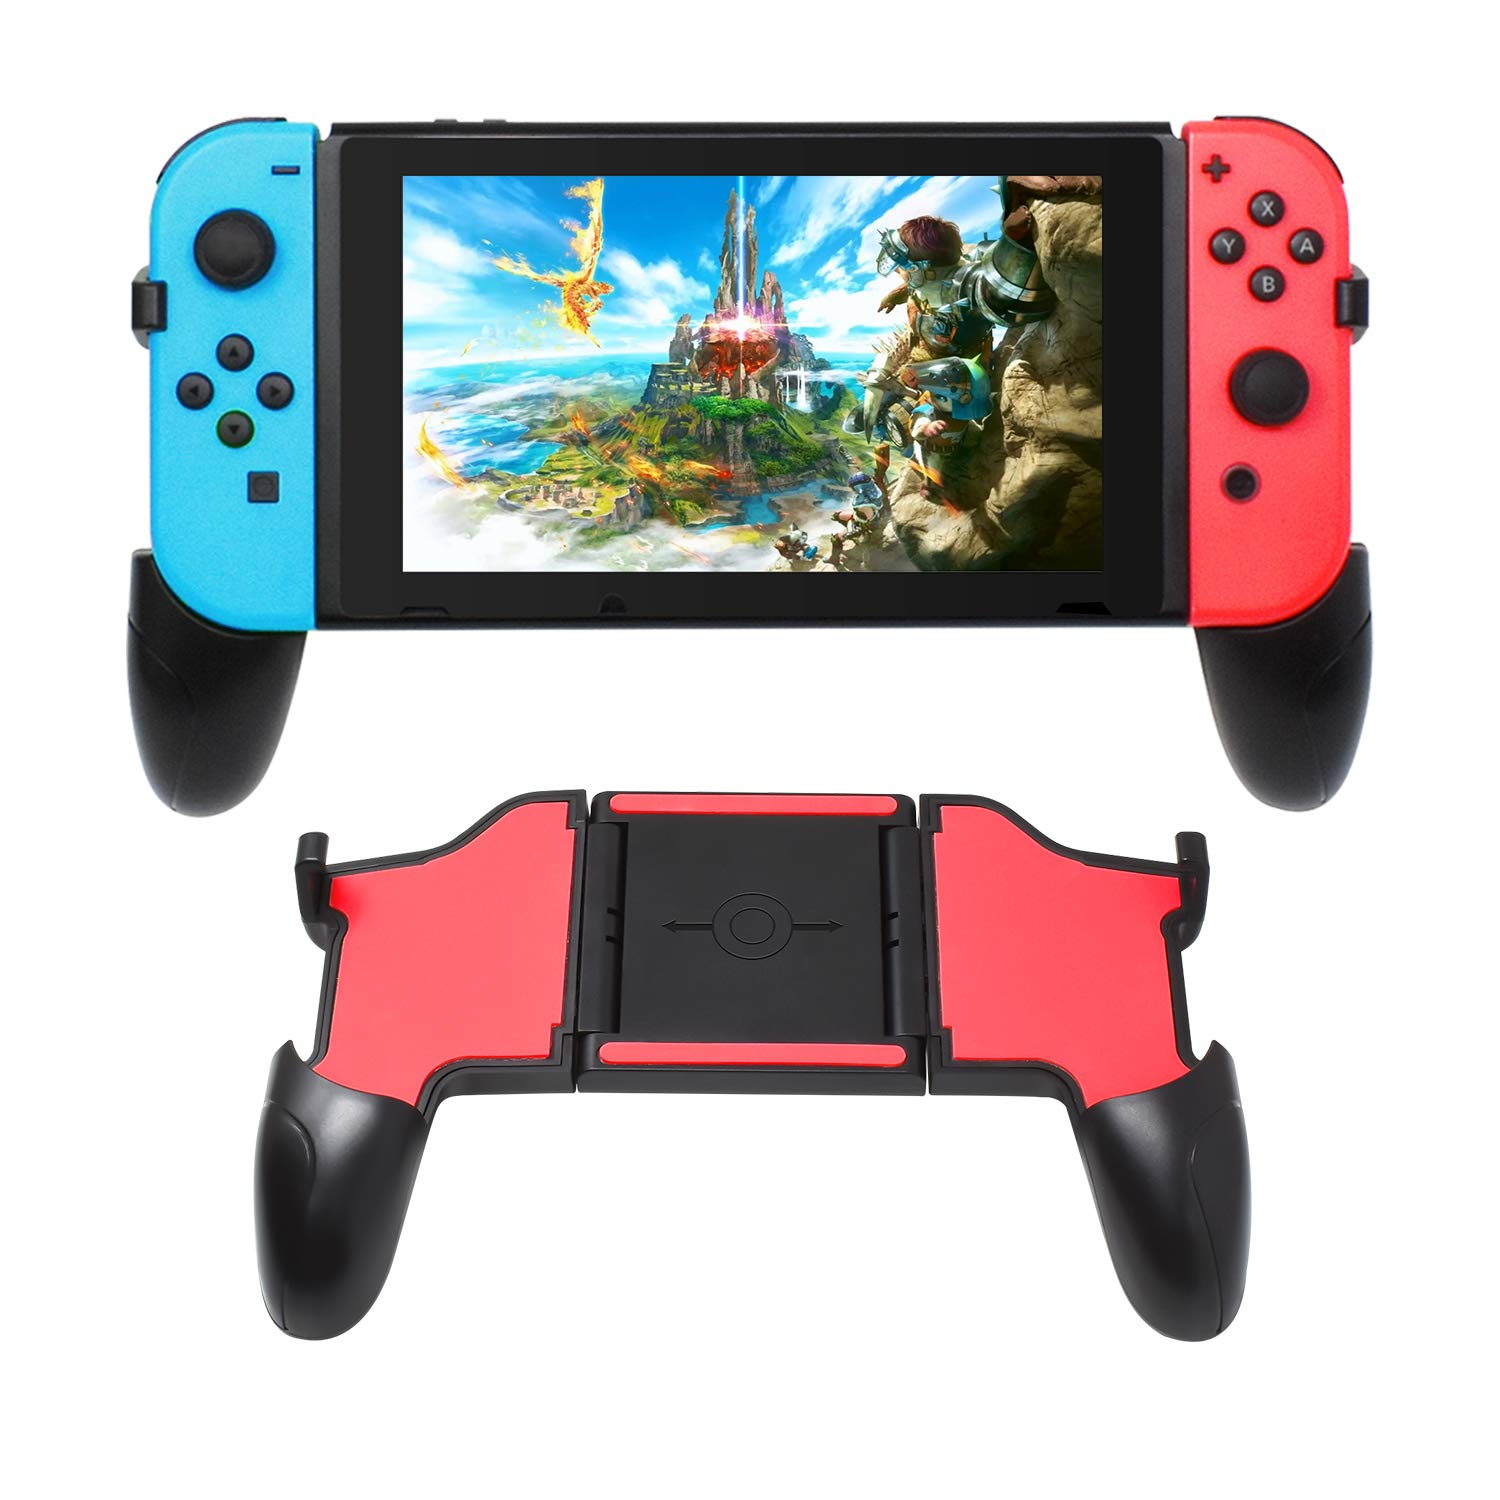 Hand Grip for Nintendo Switch with 2 Game Slots, Wider Controller Grip for Nintendo Switch by FYOUNG